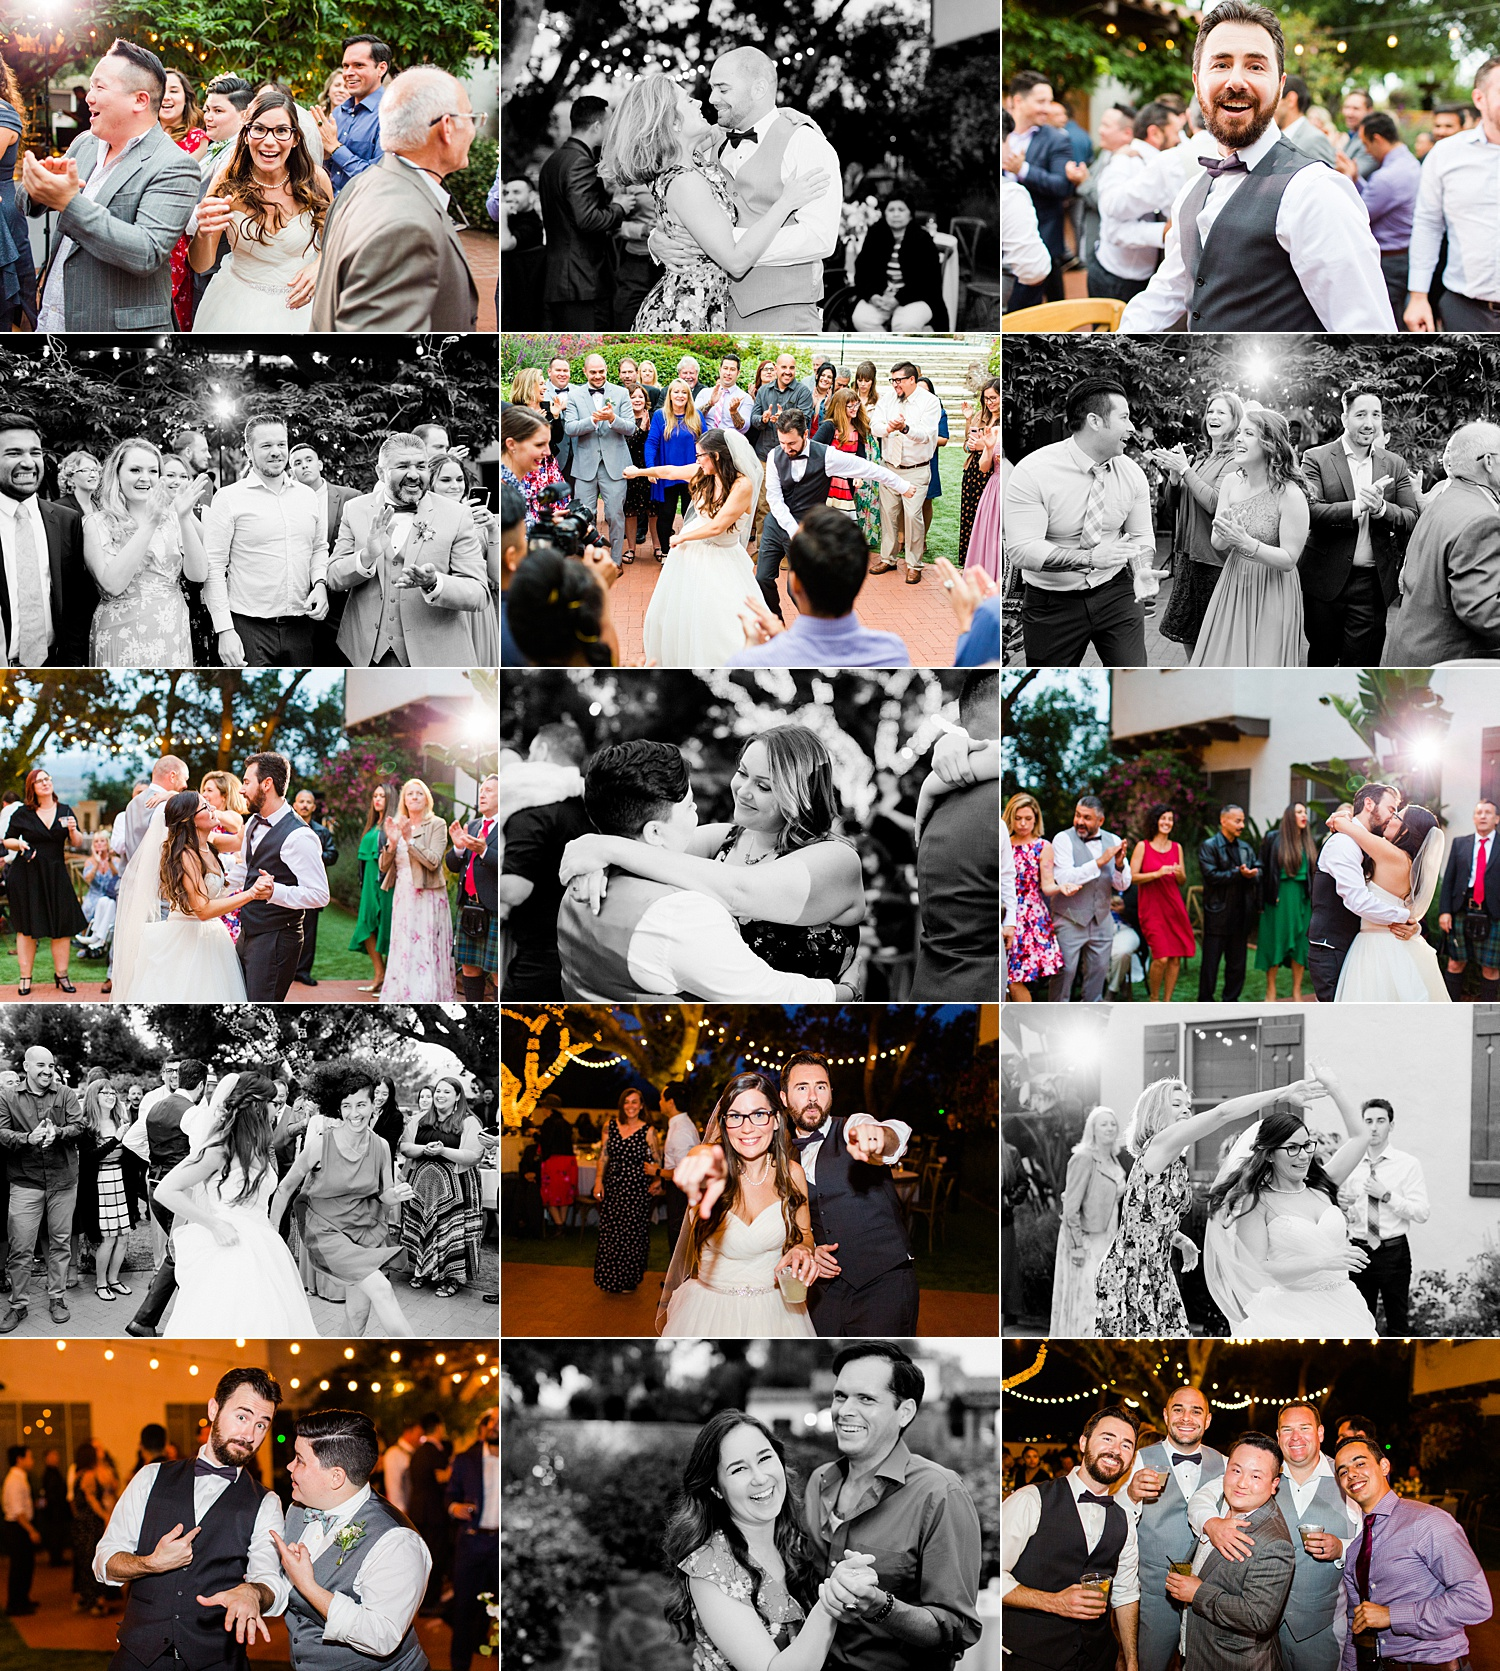 quail-ranch-wedding-photographer_0207.jpg